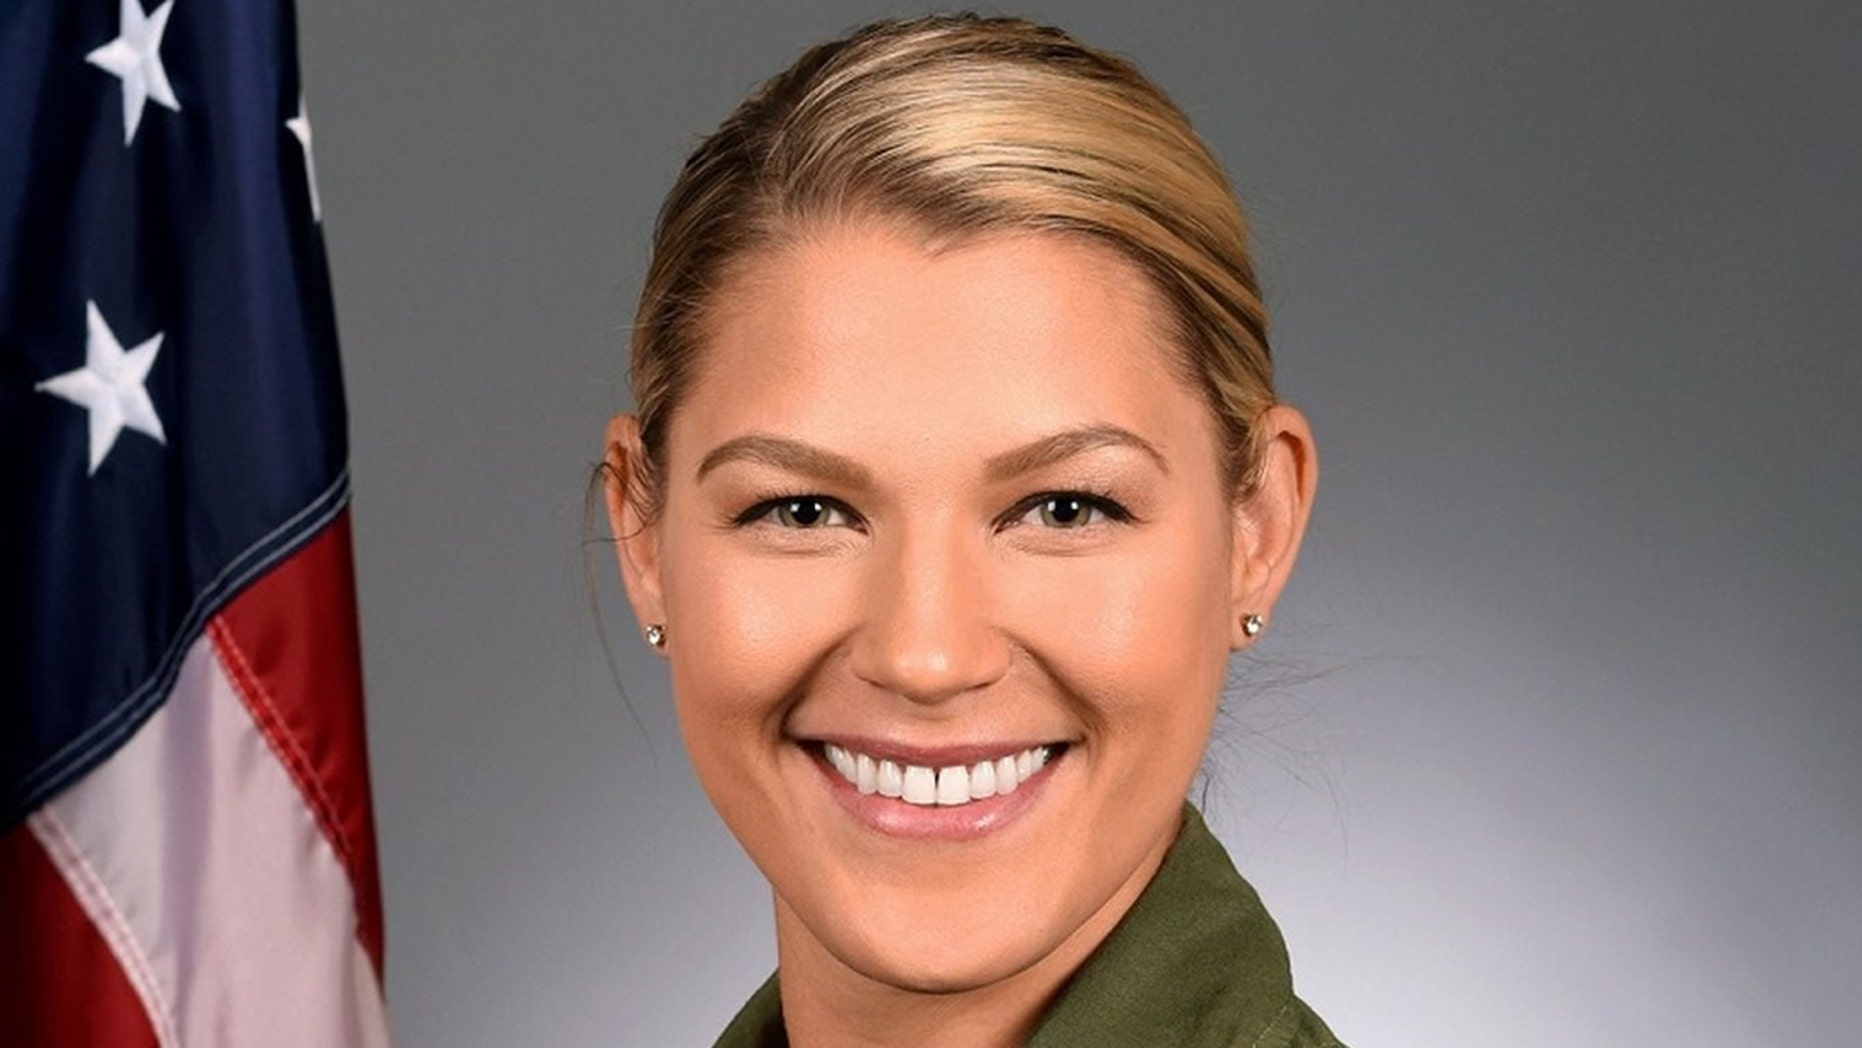 Capt. Zoe Kotnik was removed from her position after two weeks, said Col. Derek O'Malley, the 20th Fighter Wing commander.